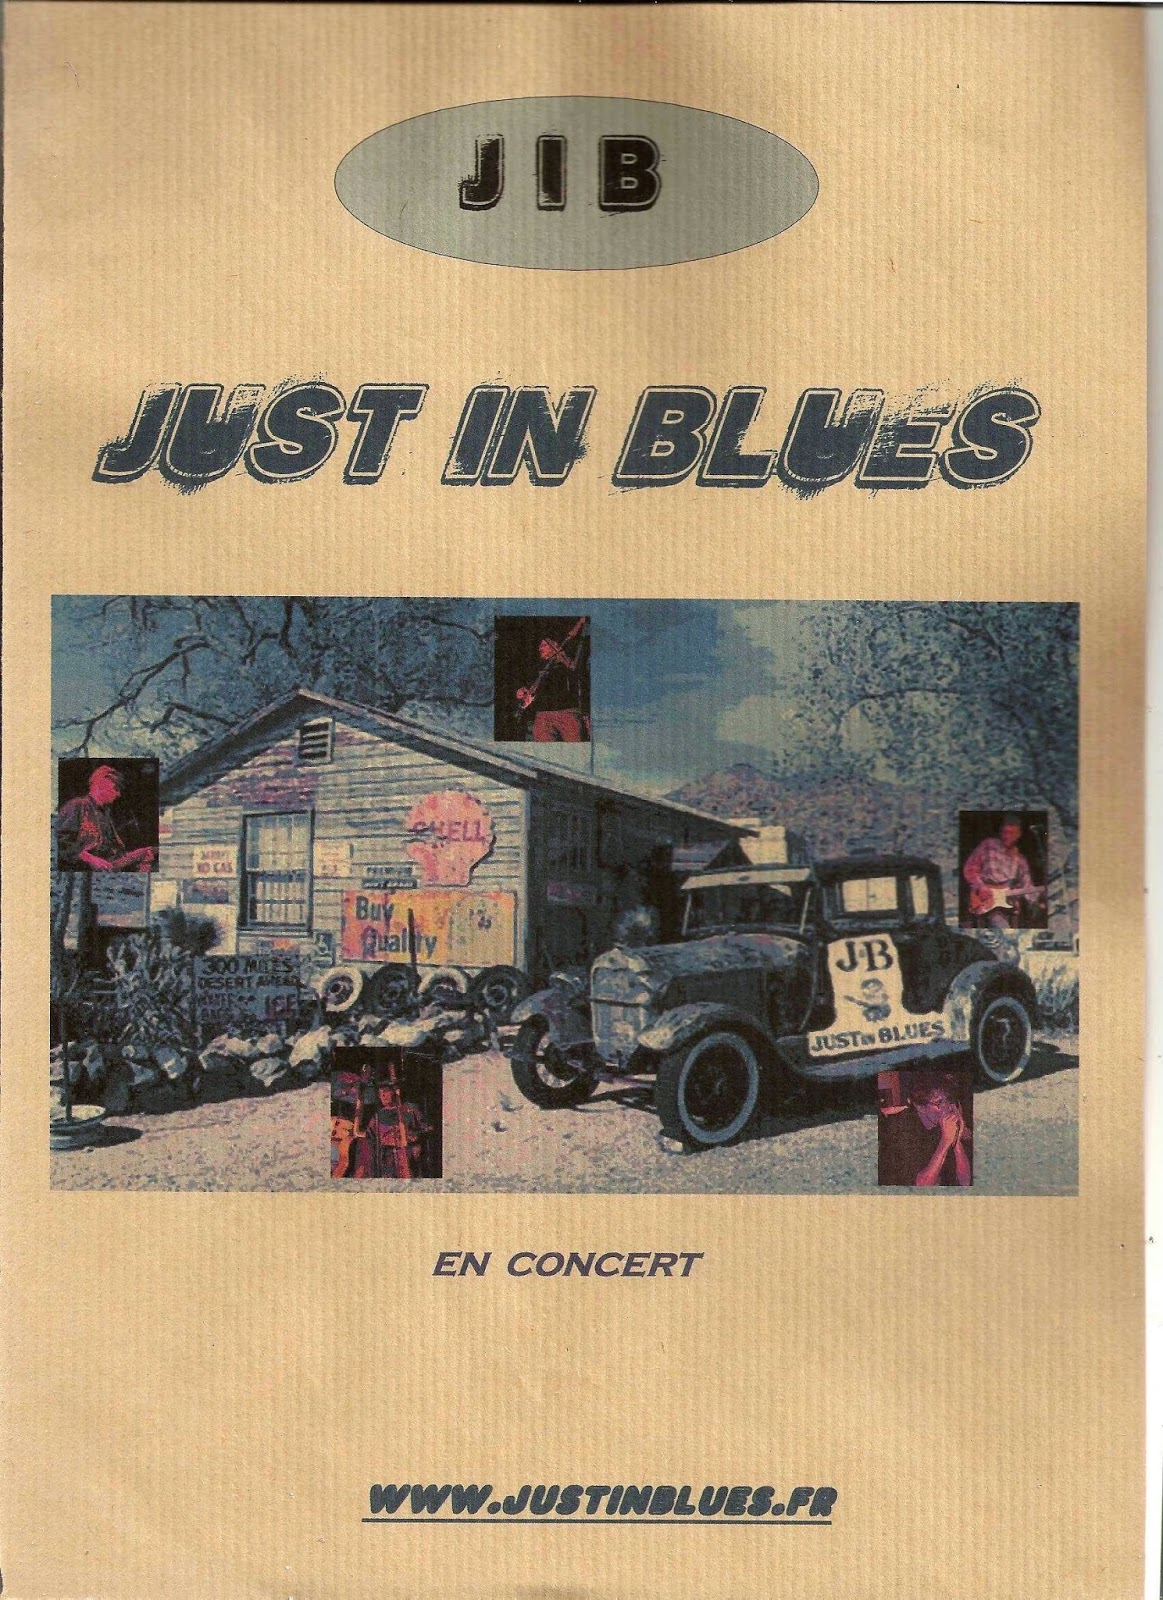 Just'in blues